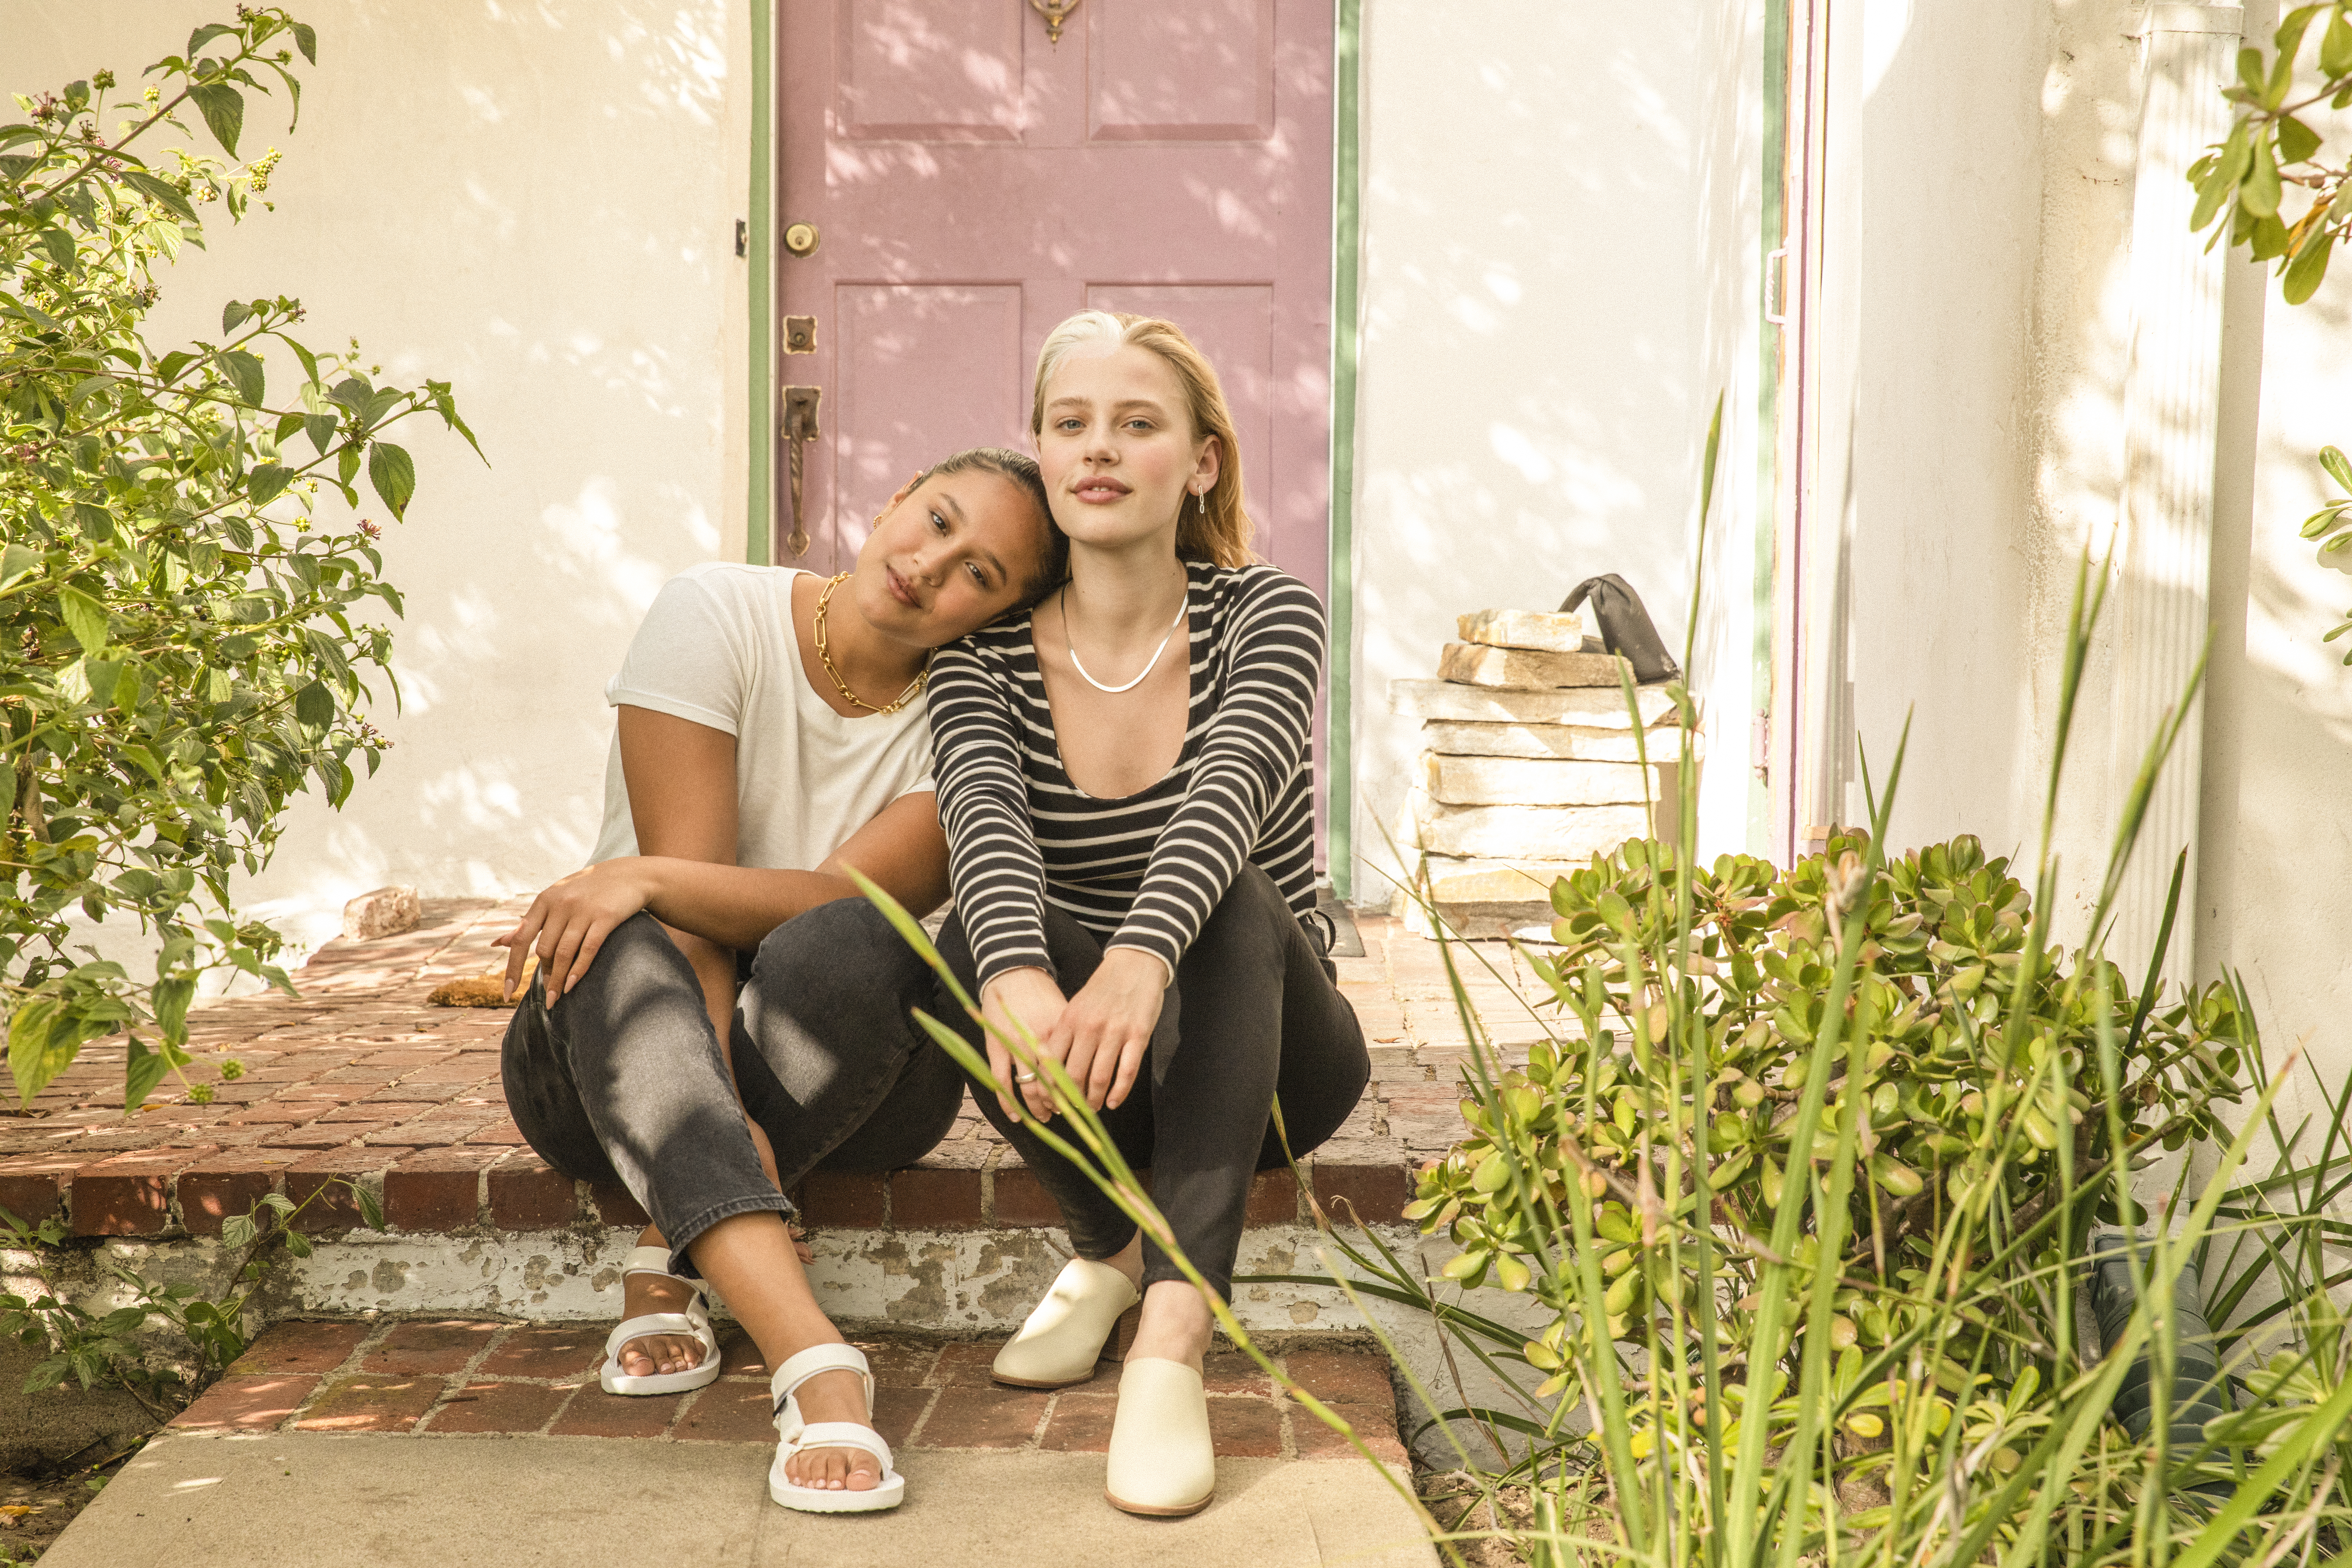 An image from the Madewell Forever campaign.